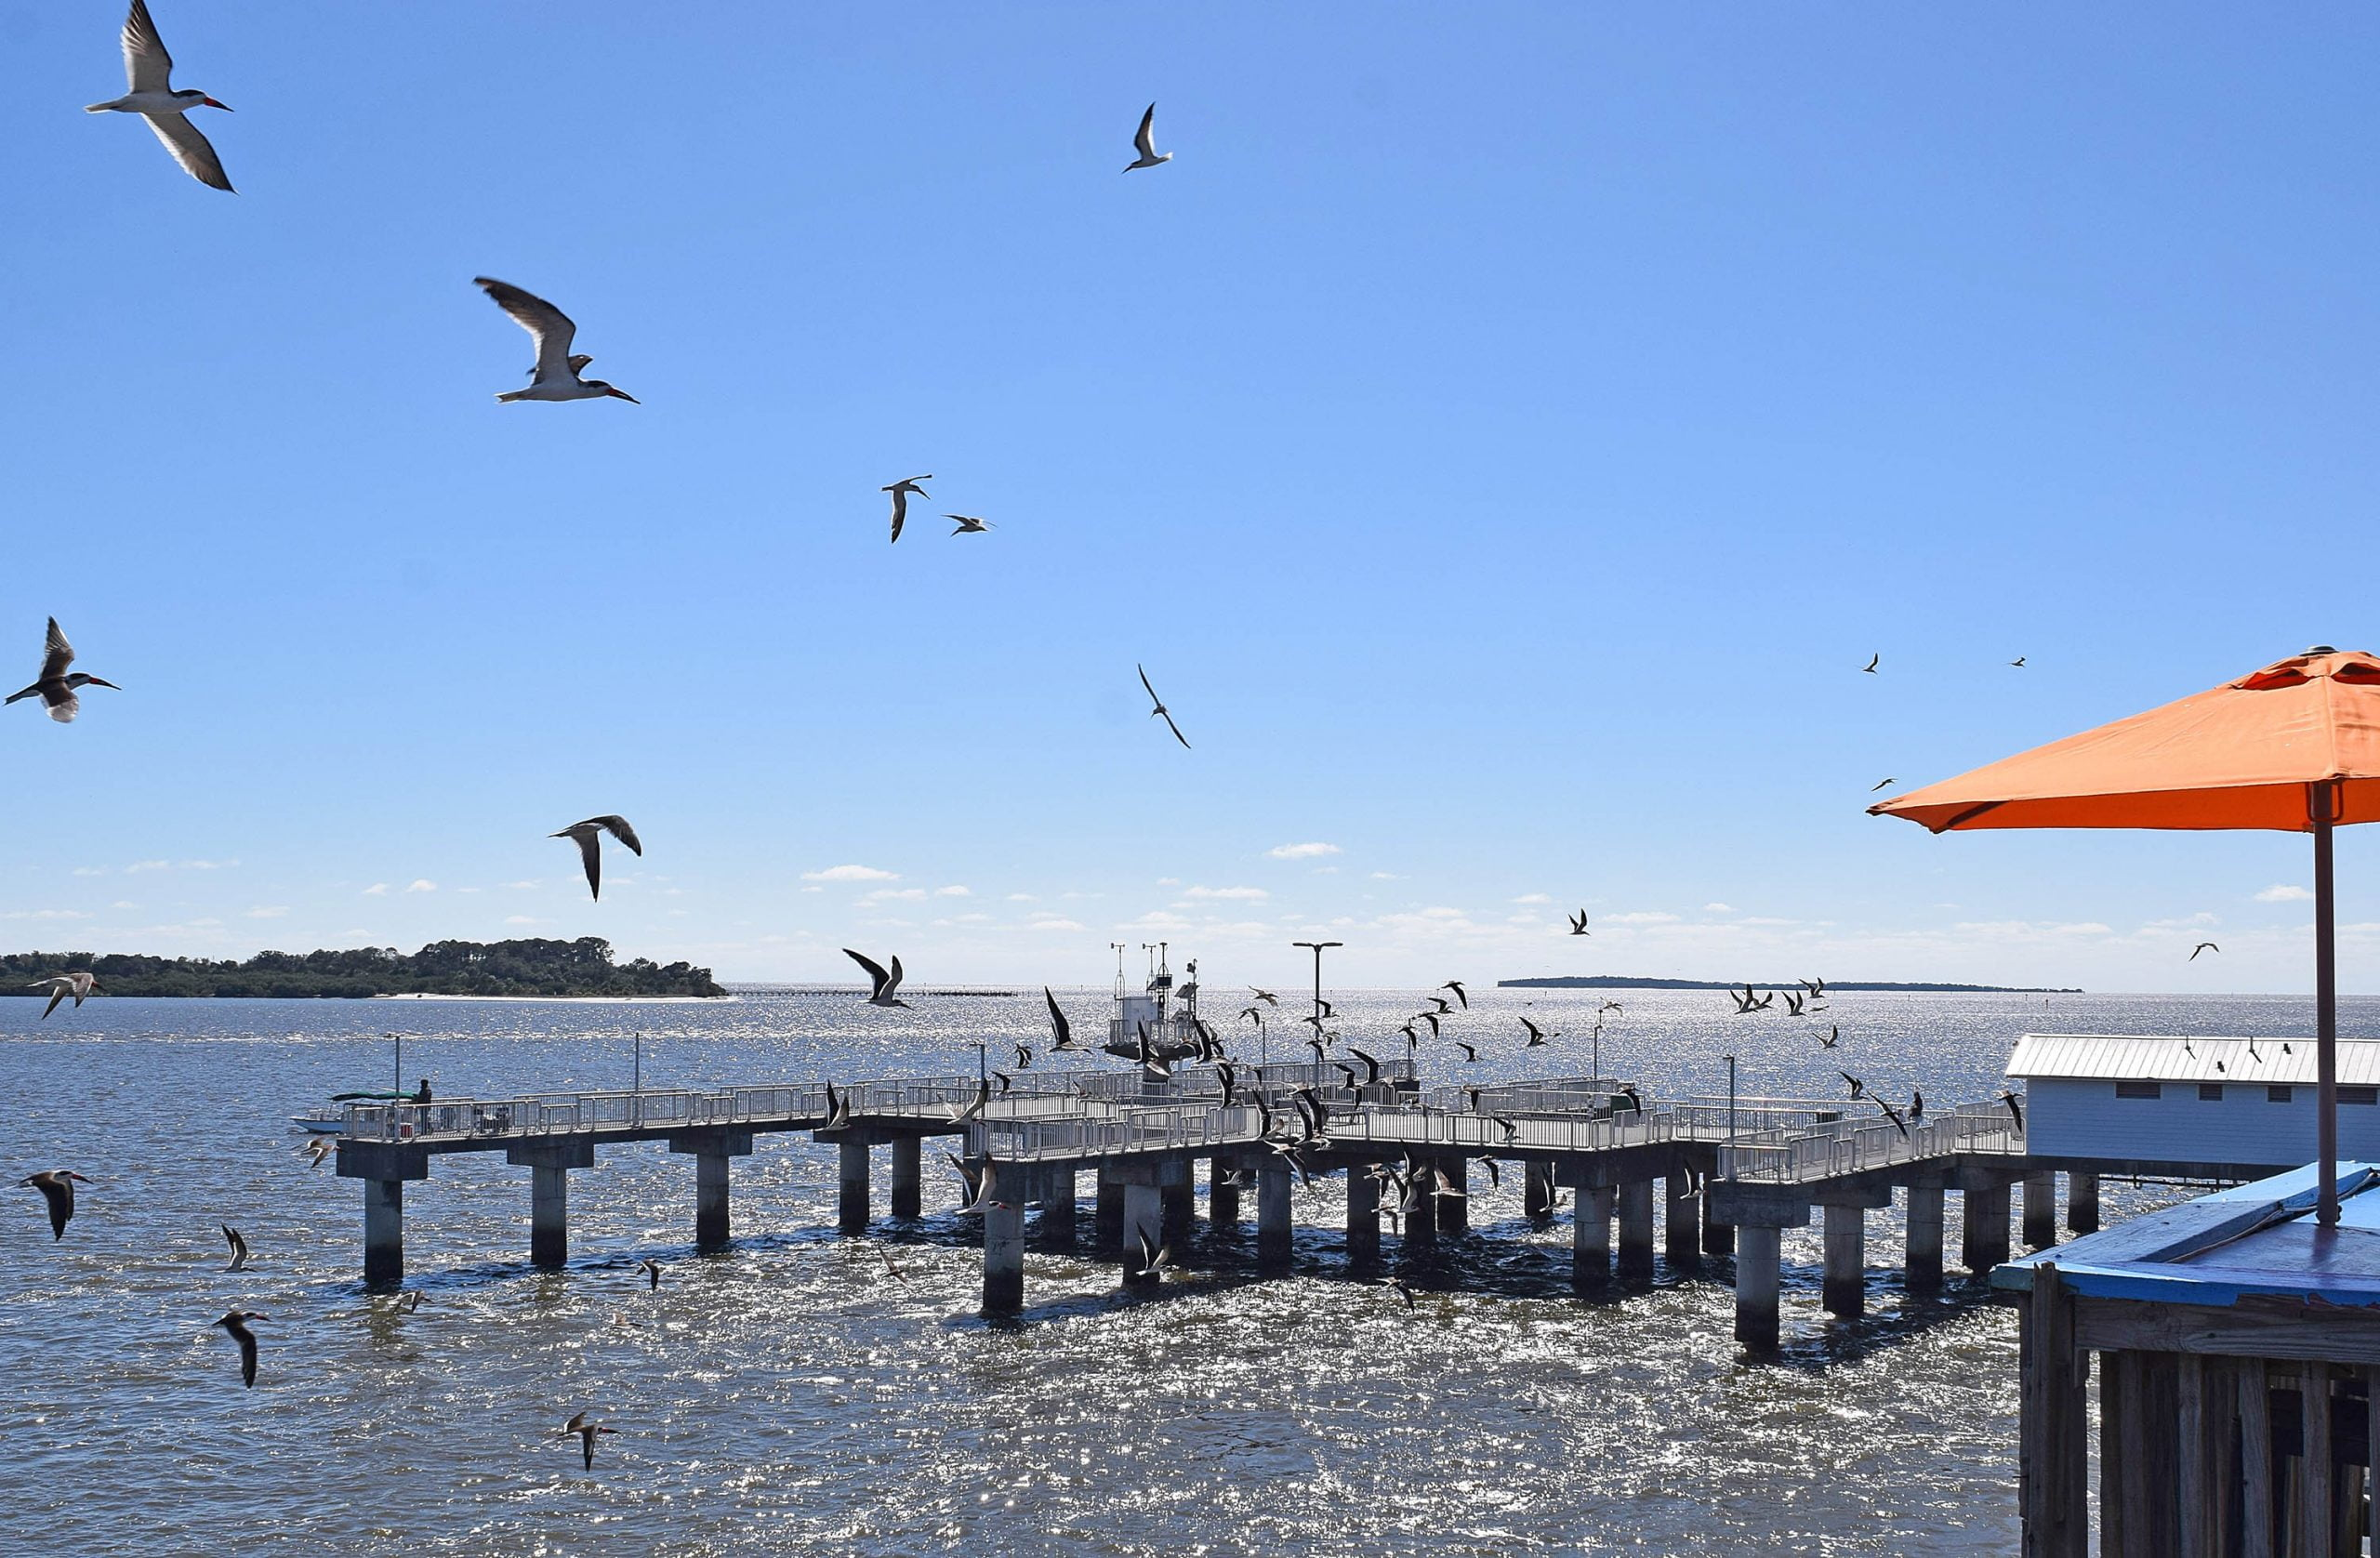 The Gulf of Mexico with birds flying